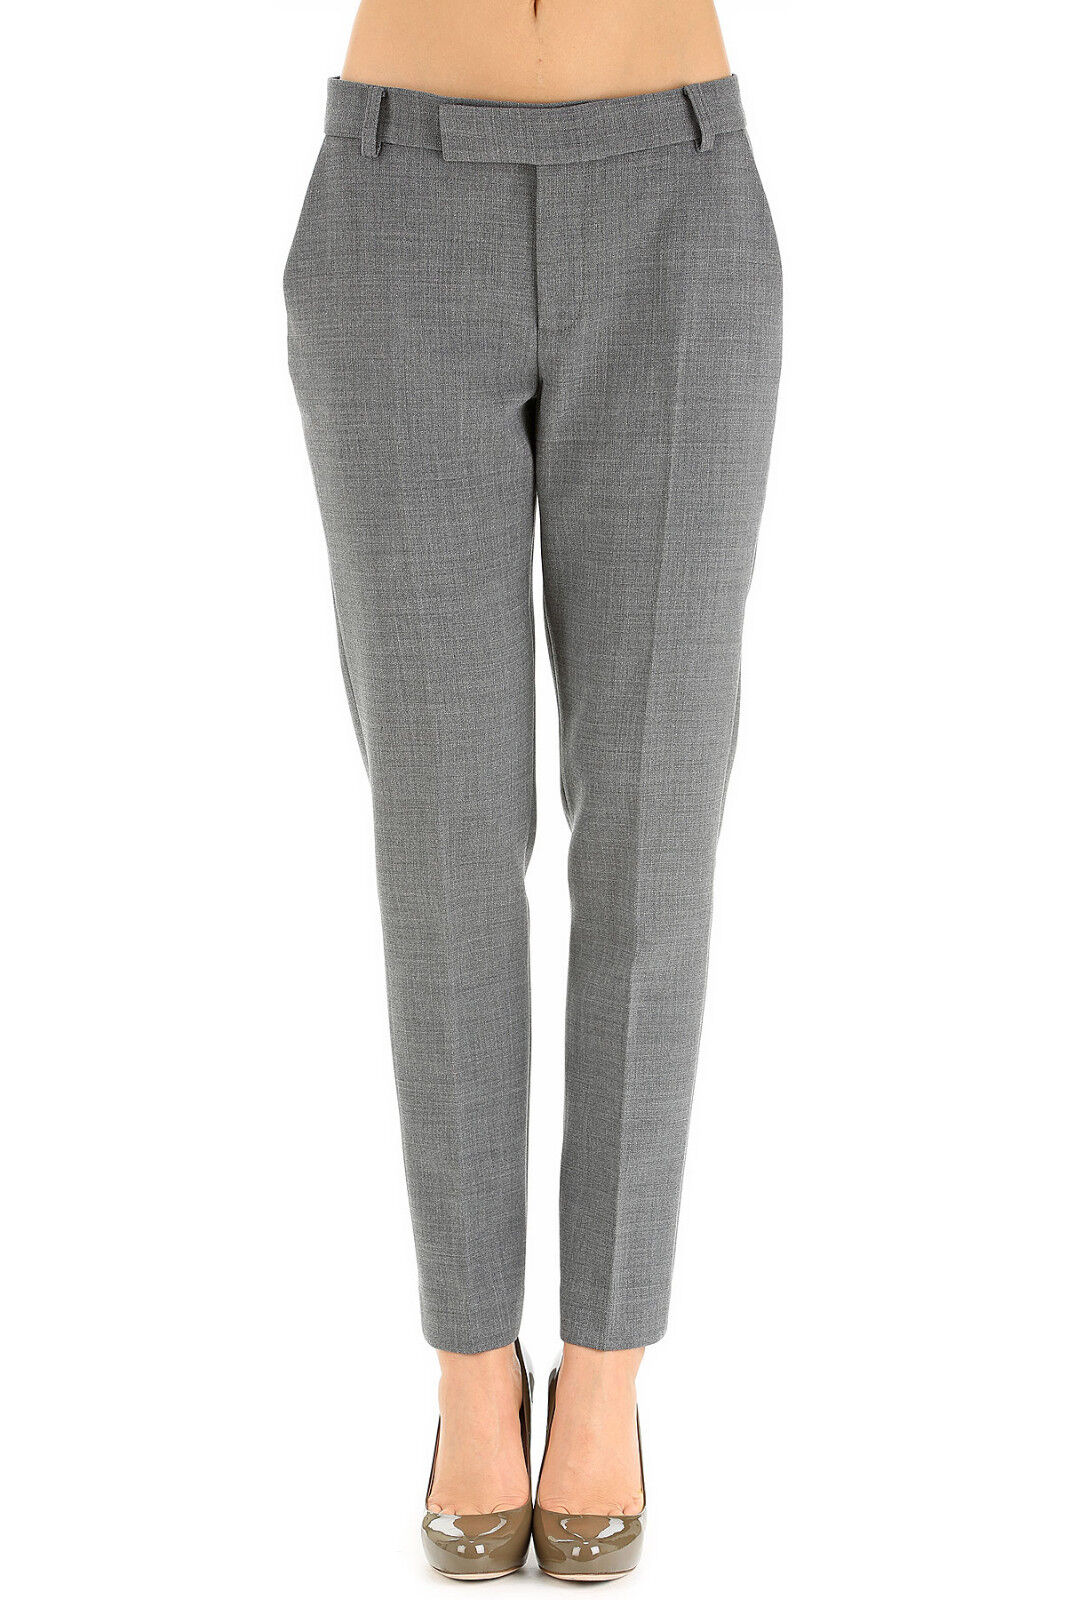 Marc by Marc Jacobs Pantalonelana, Sixties wool trousers